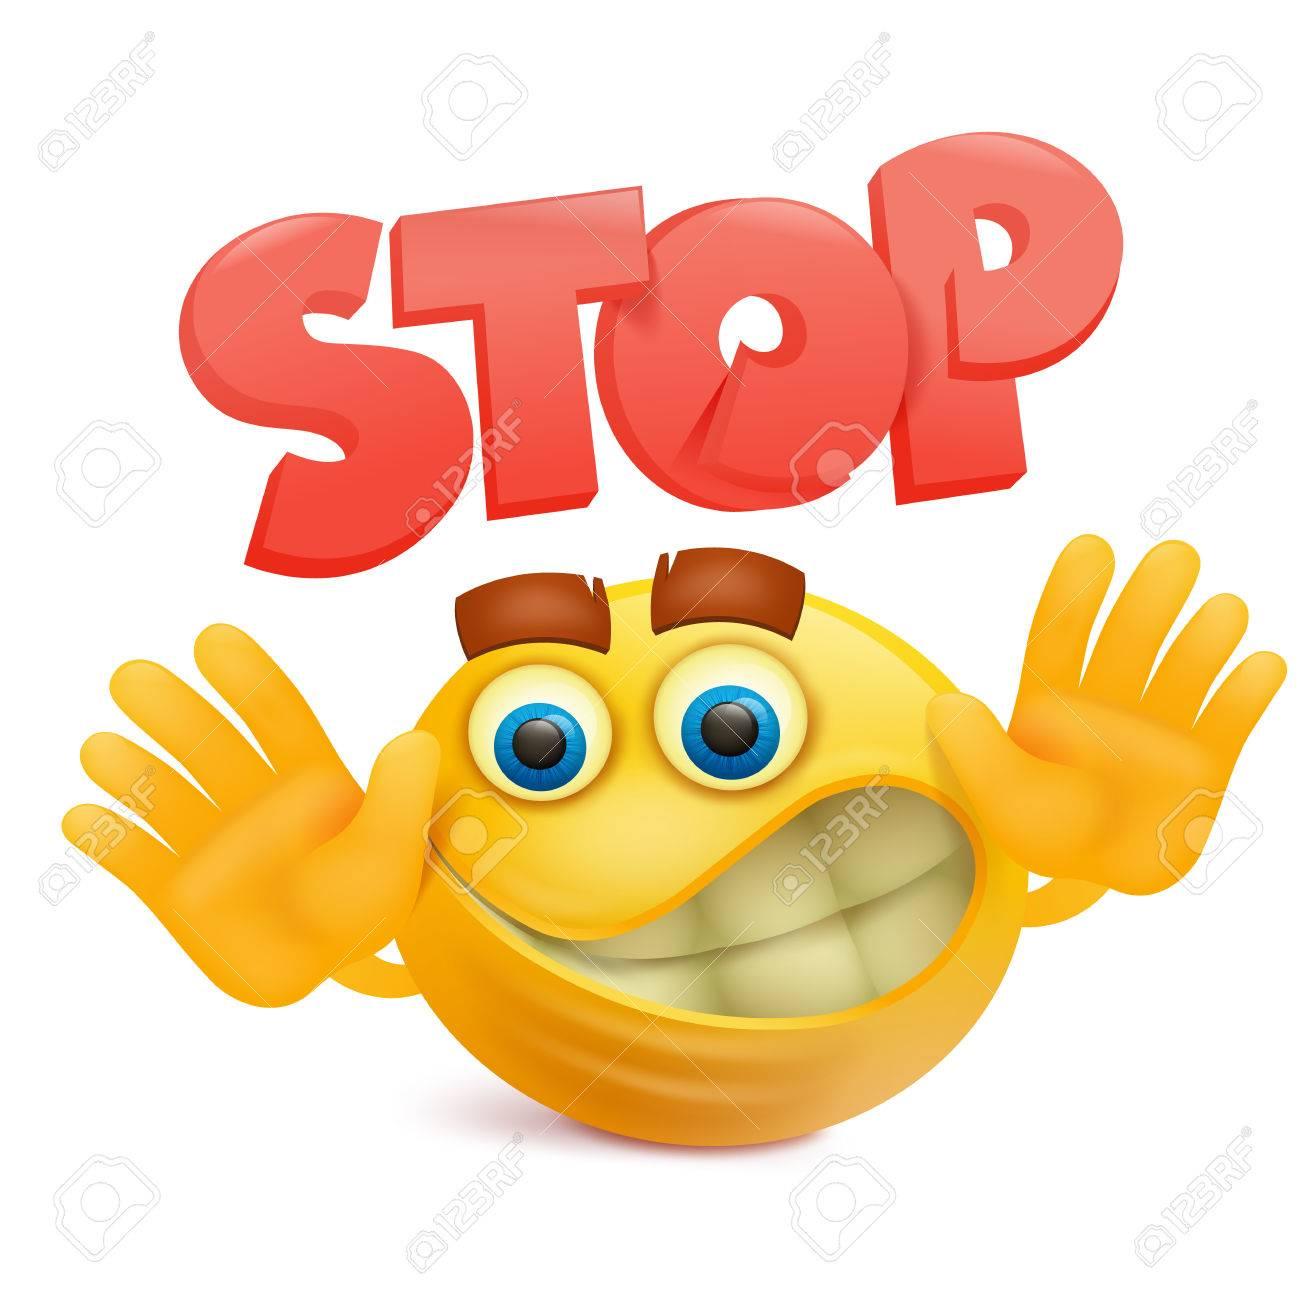 Yellow Smile Face Emoji Cartoon Character With Stop Gesture Vector